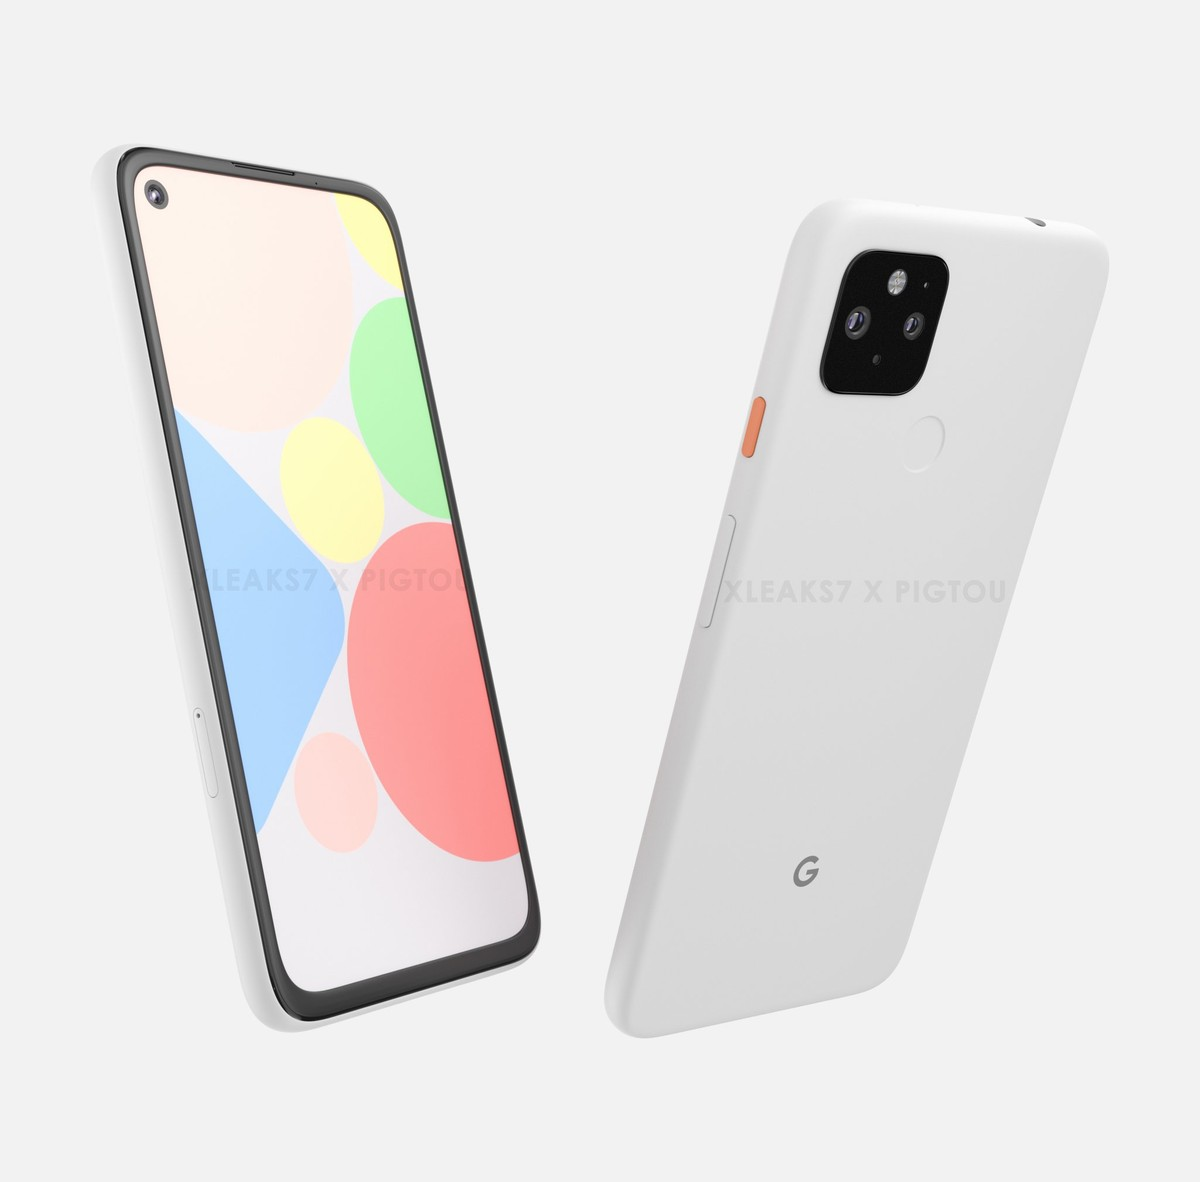 Pixel 4a may go on sale in October; Pixel 5 launch pushed back